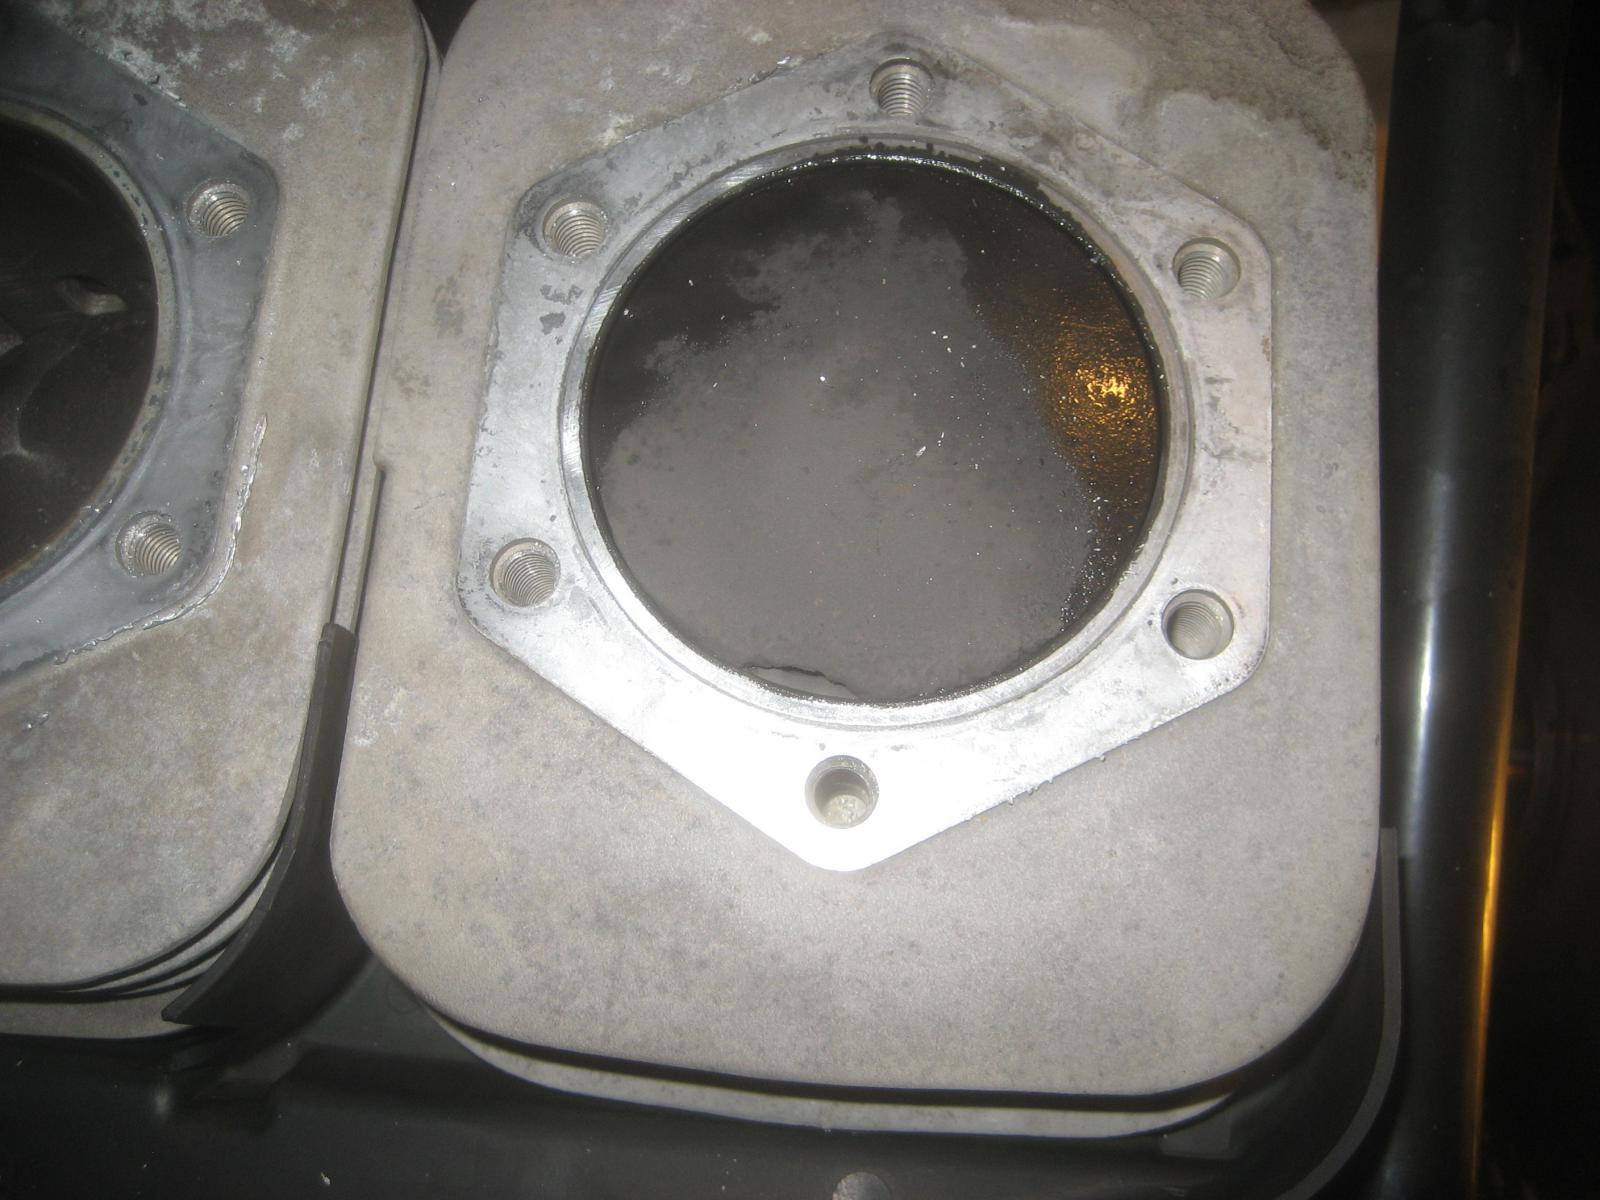 2012 Polaris IQ Shift 550 Fan with another burnt piston  - HCS